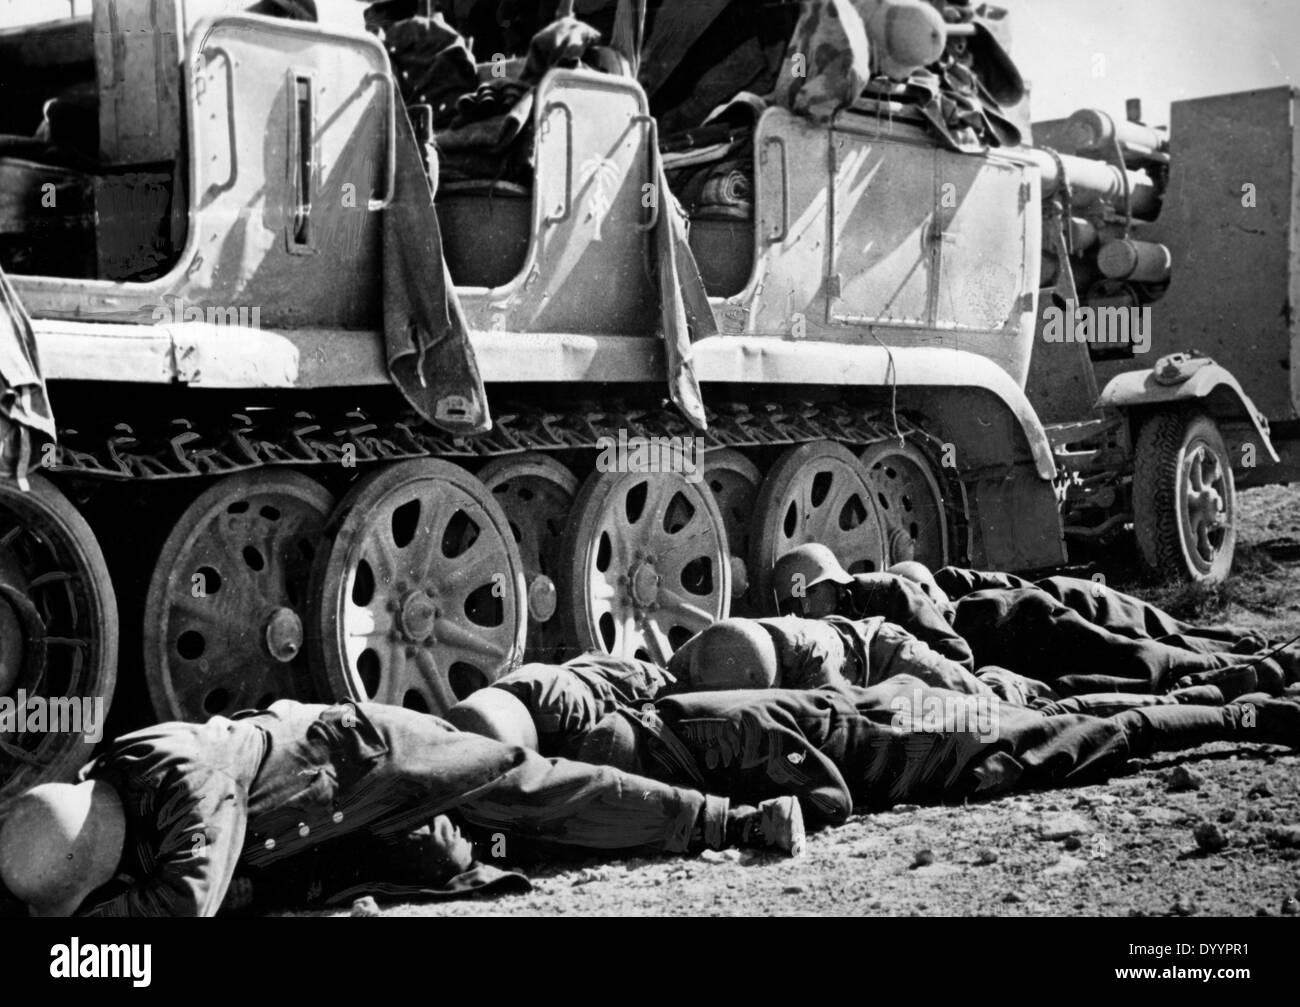 Military action on the egytian border, battle of El Alamein, 1942 - Stock Image